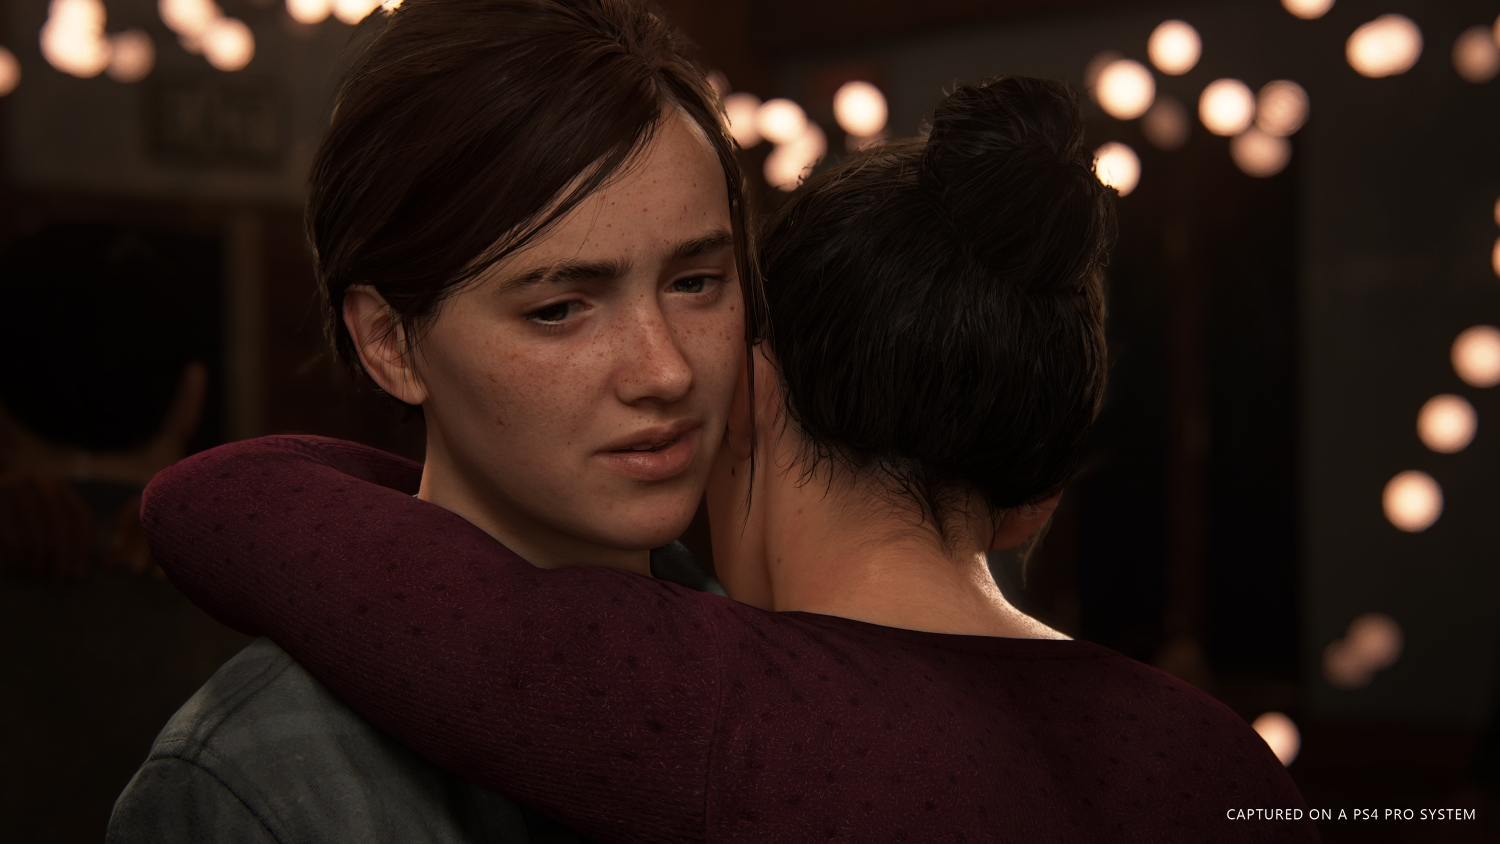 The Last Of Us Part II - are you happy with the bleakness?